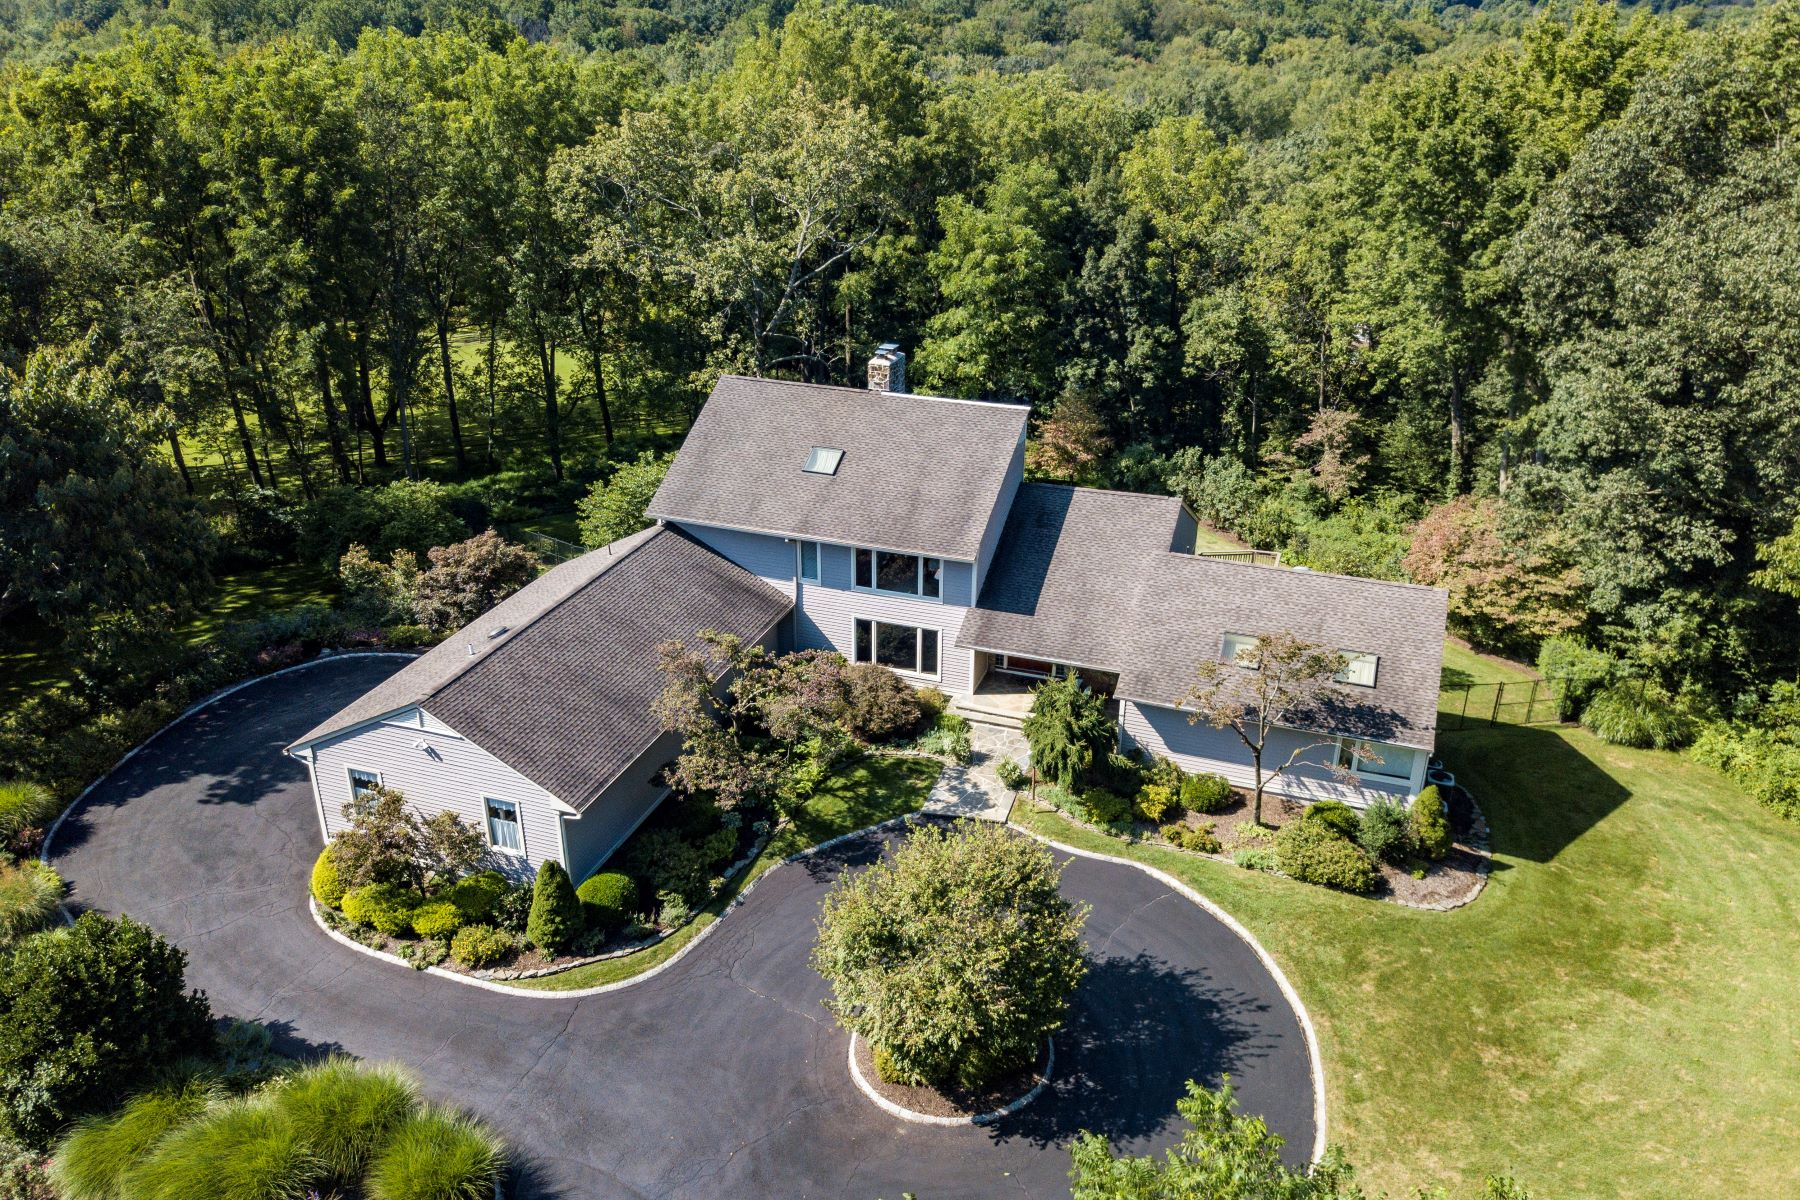 Single Family Homes for Sale at Impressive Custom Home 70 Washington Valley Road Morris Township, New Jersey 07960 United States